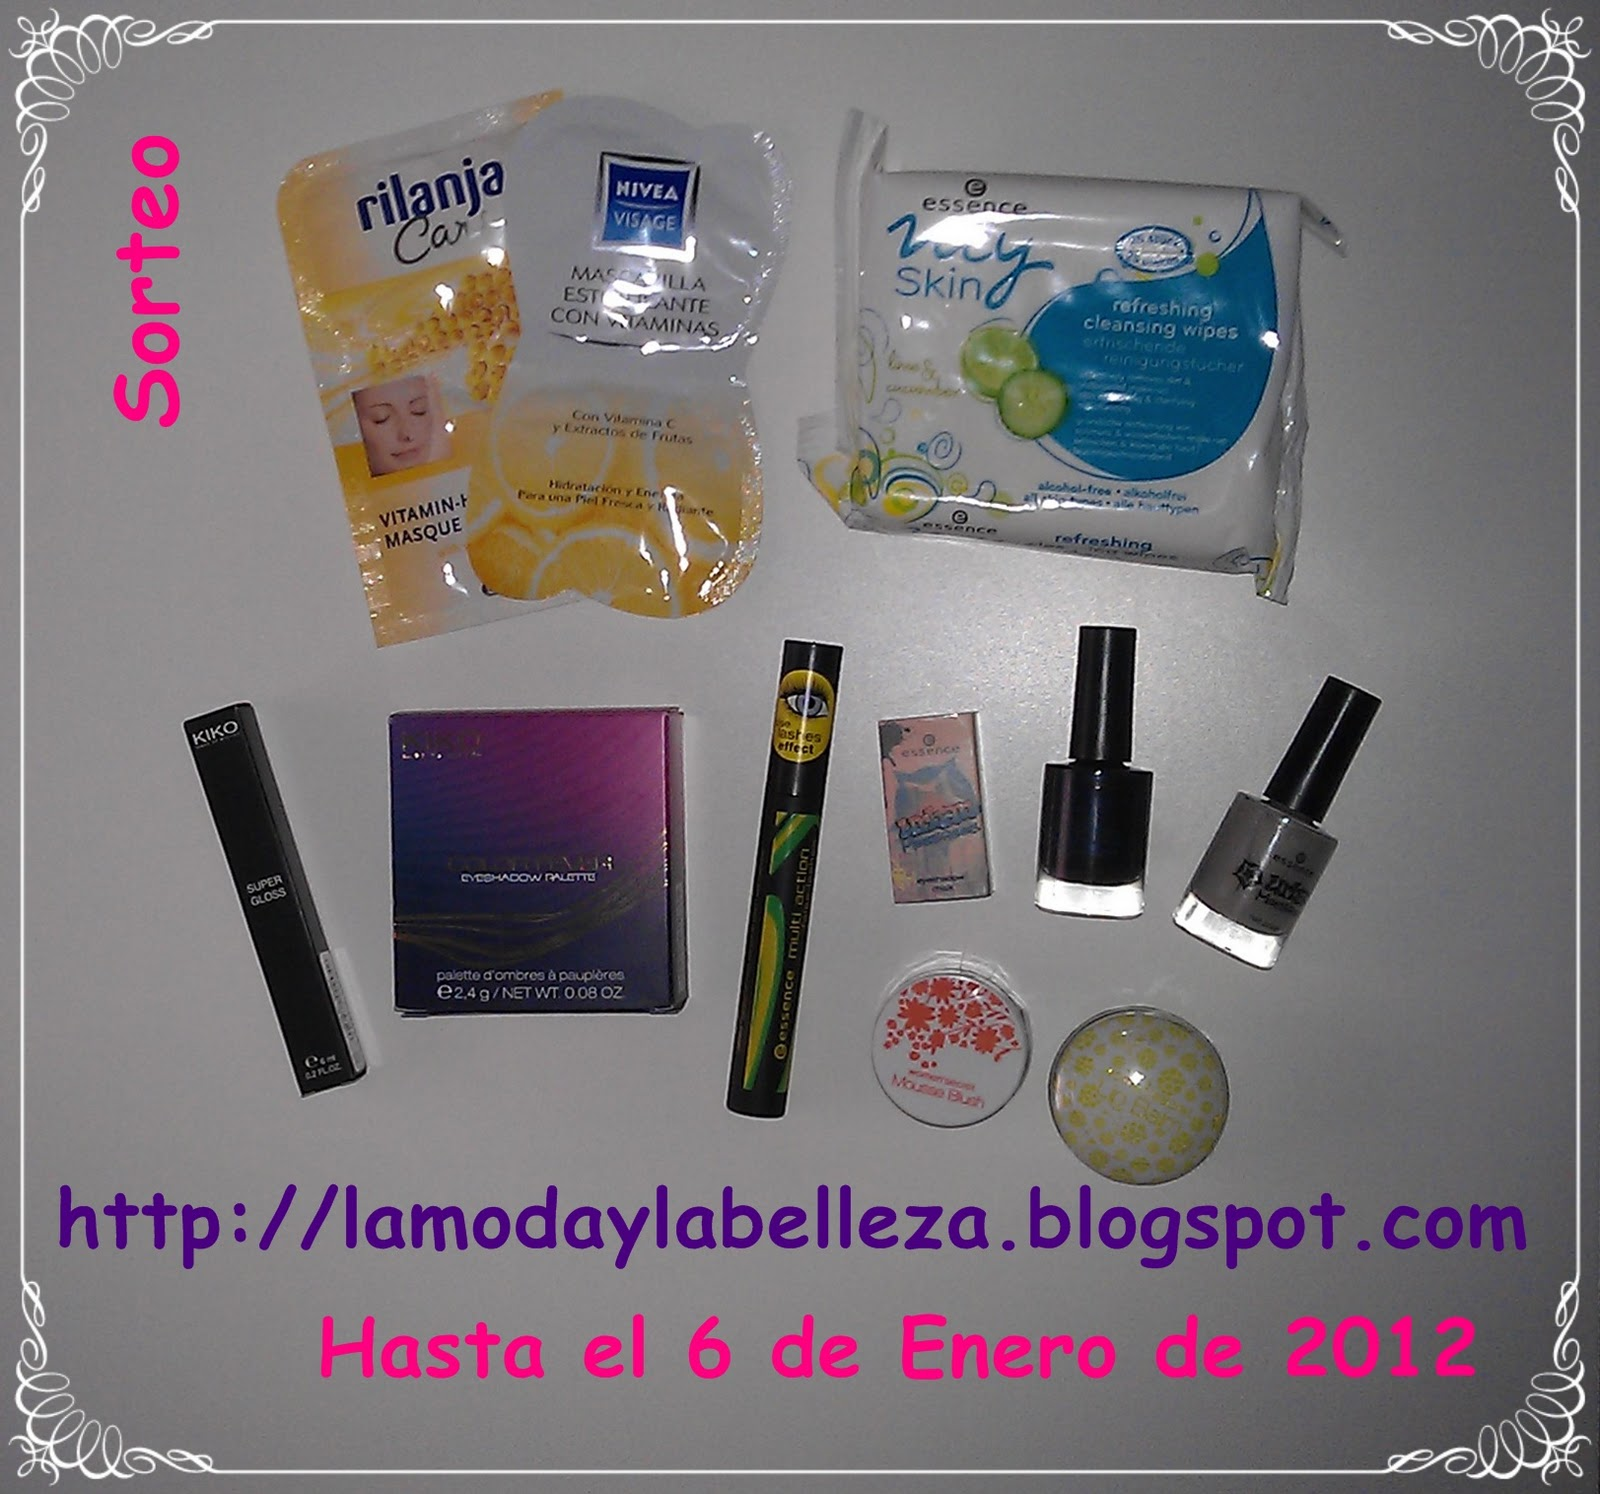 SORTEO - 06.01.12